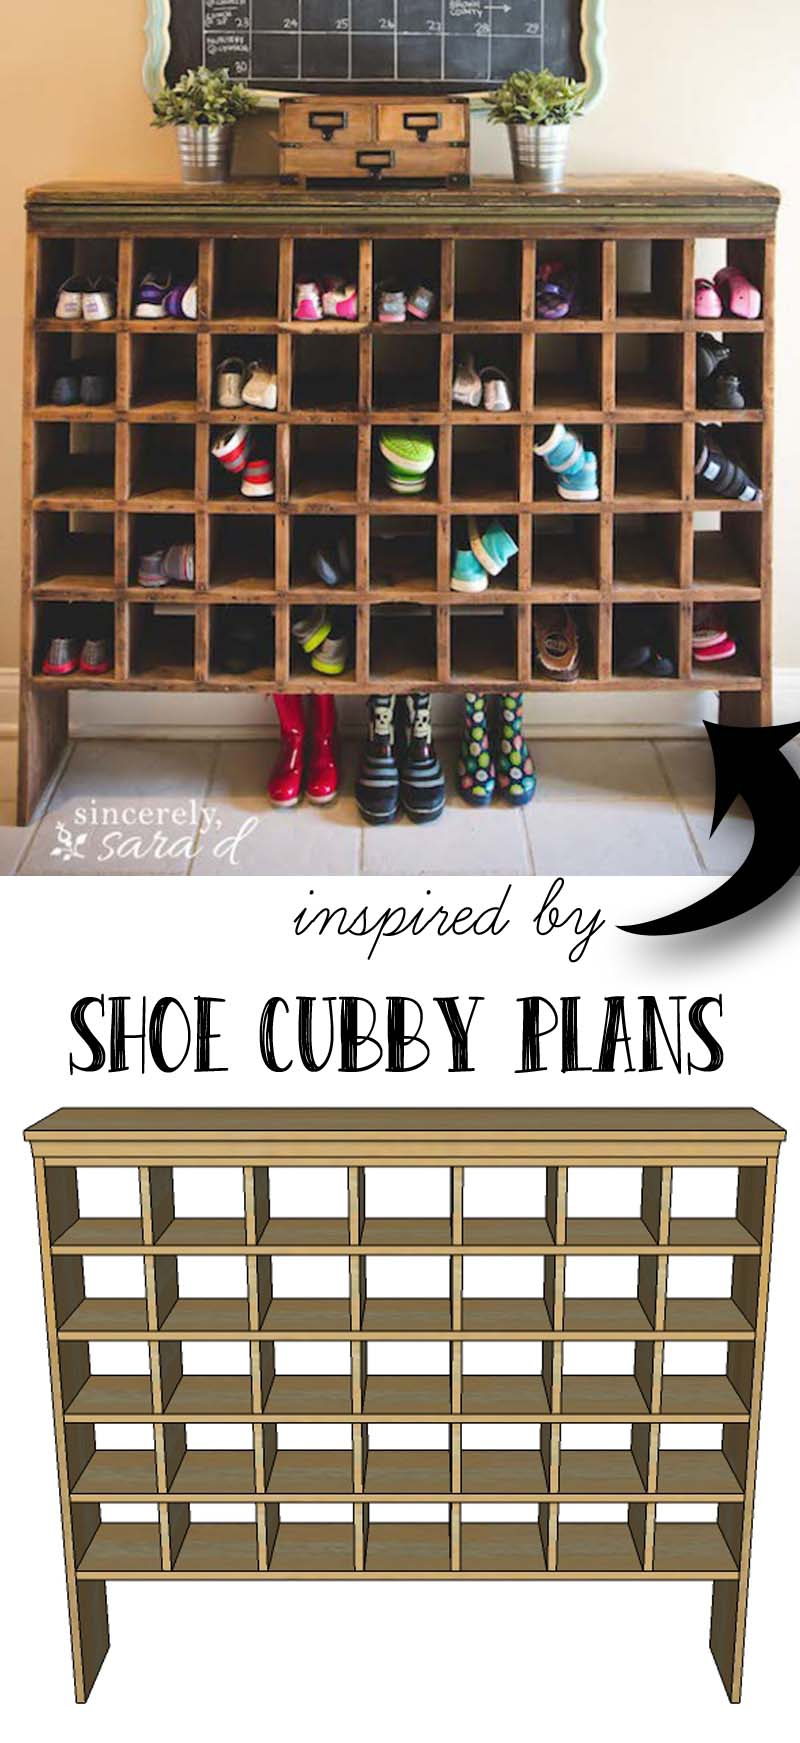 build your own shoe cubby remodelaholic sincerely sara d shoe cubby plans